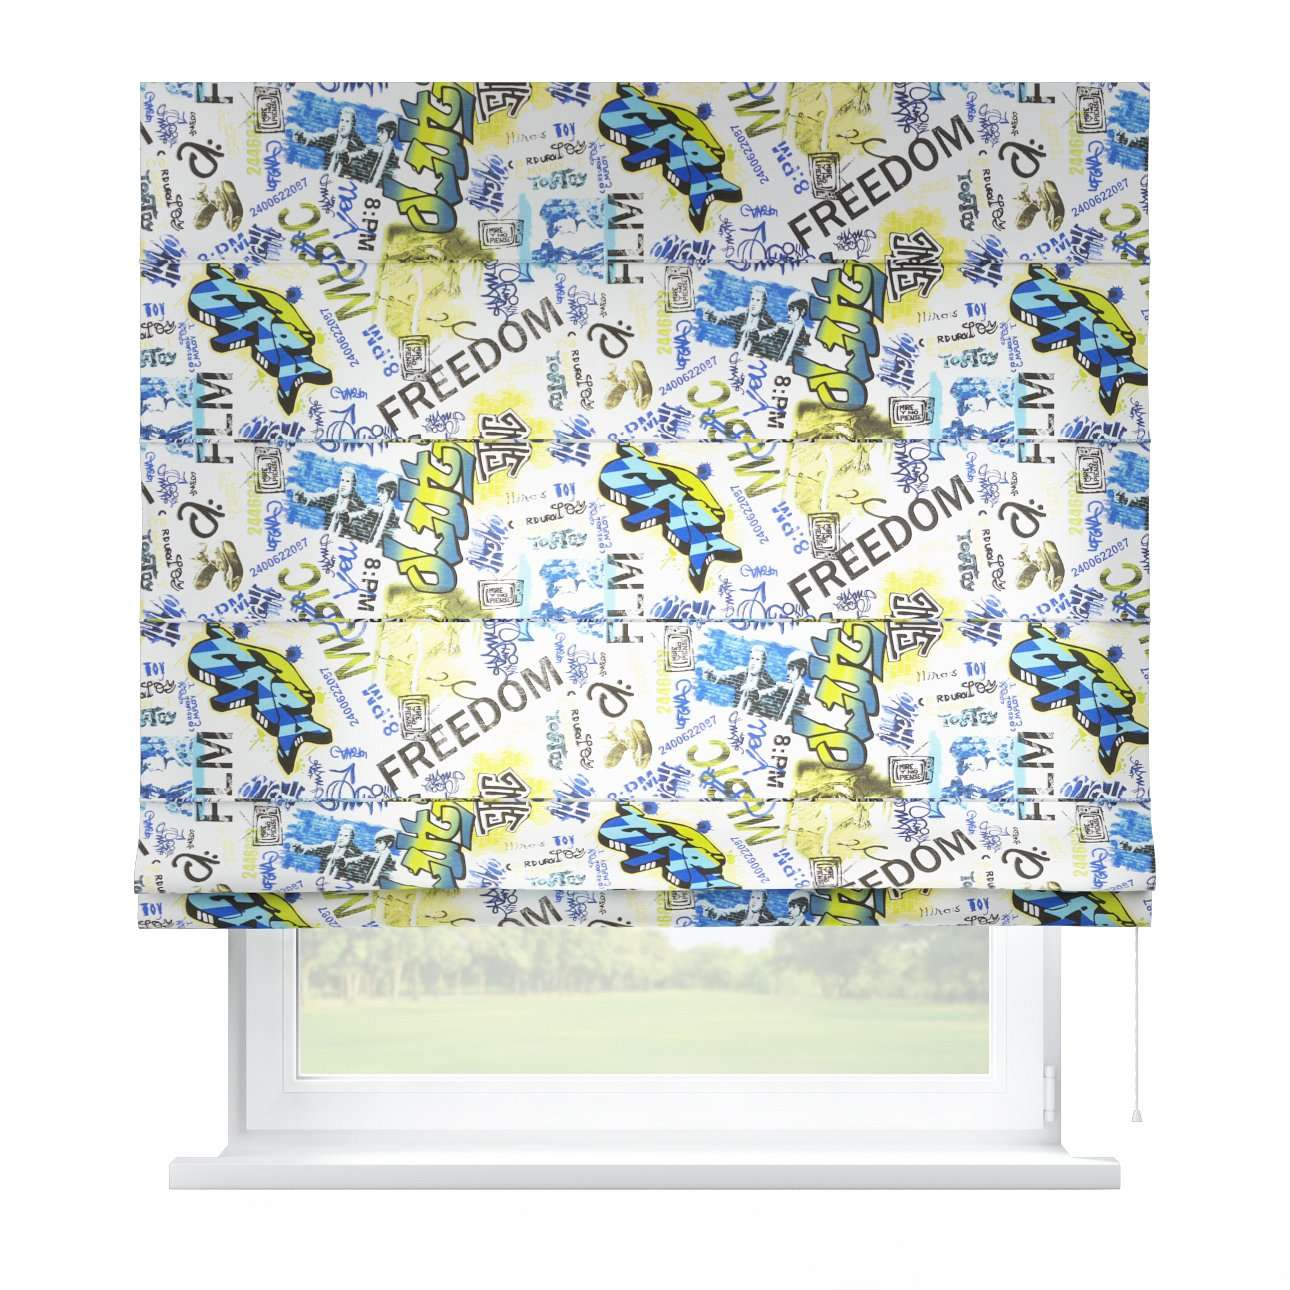 Capri roman blind 80 x 170 cm (31.5 x 67 inch) in collection Freestyle, fabric: 135-08